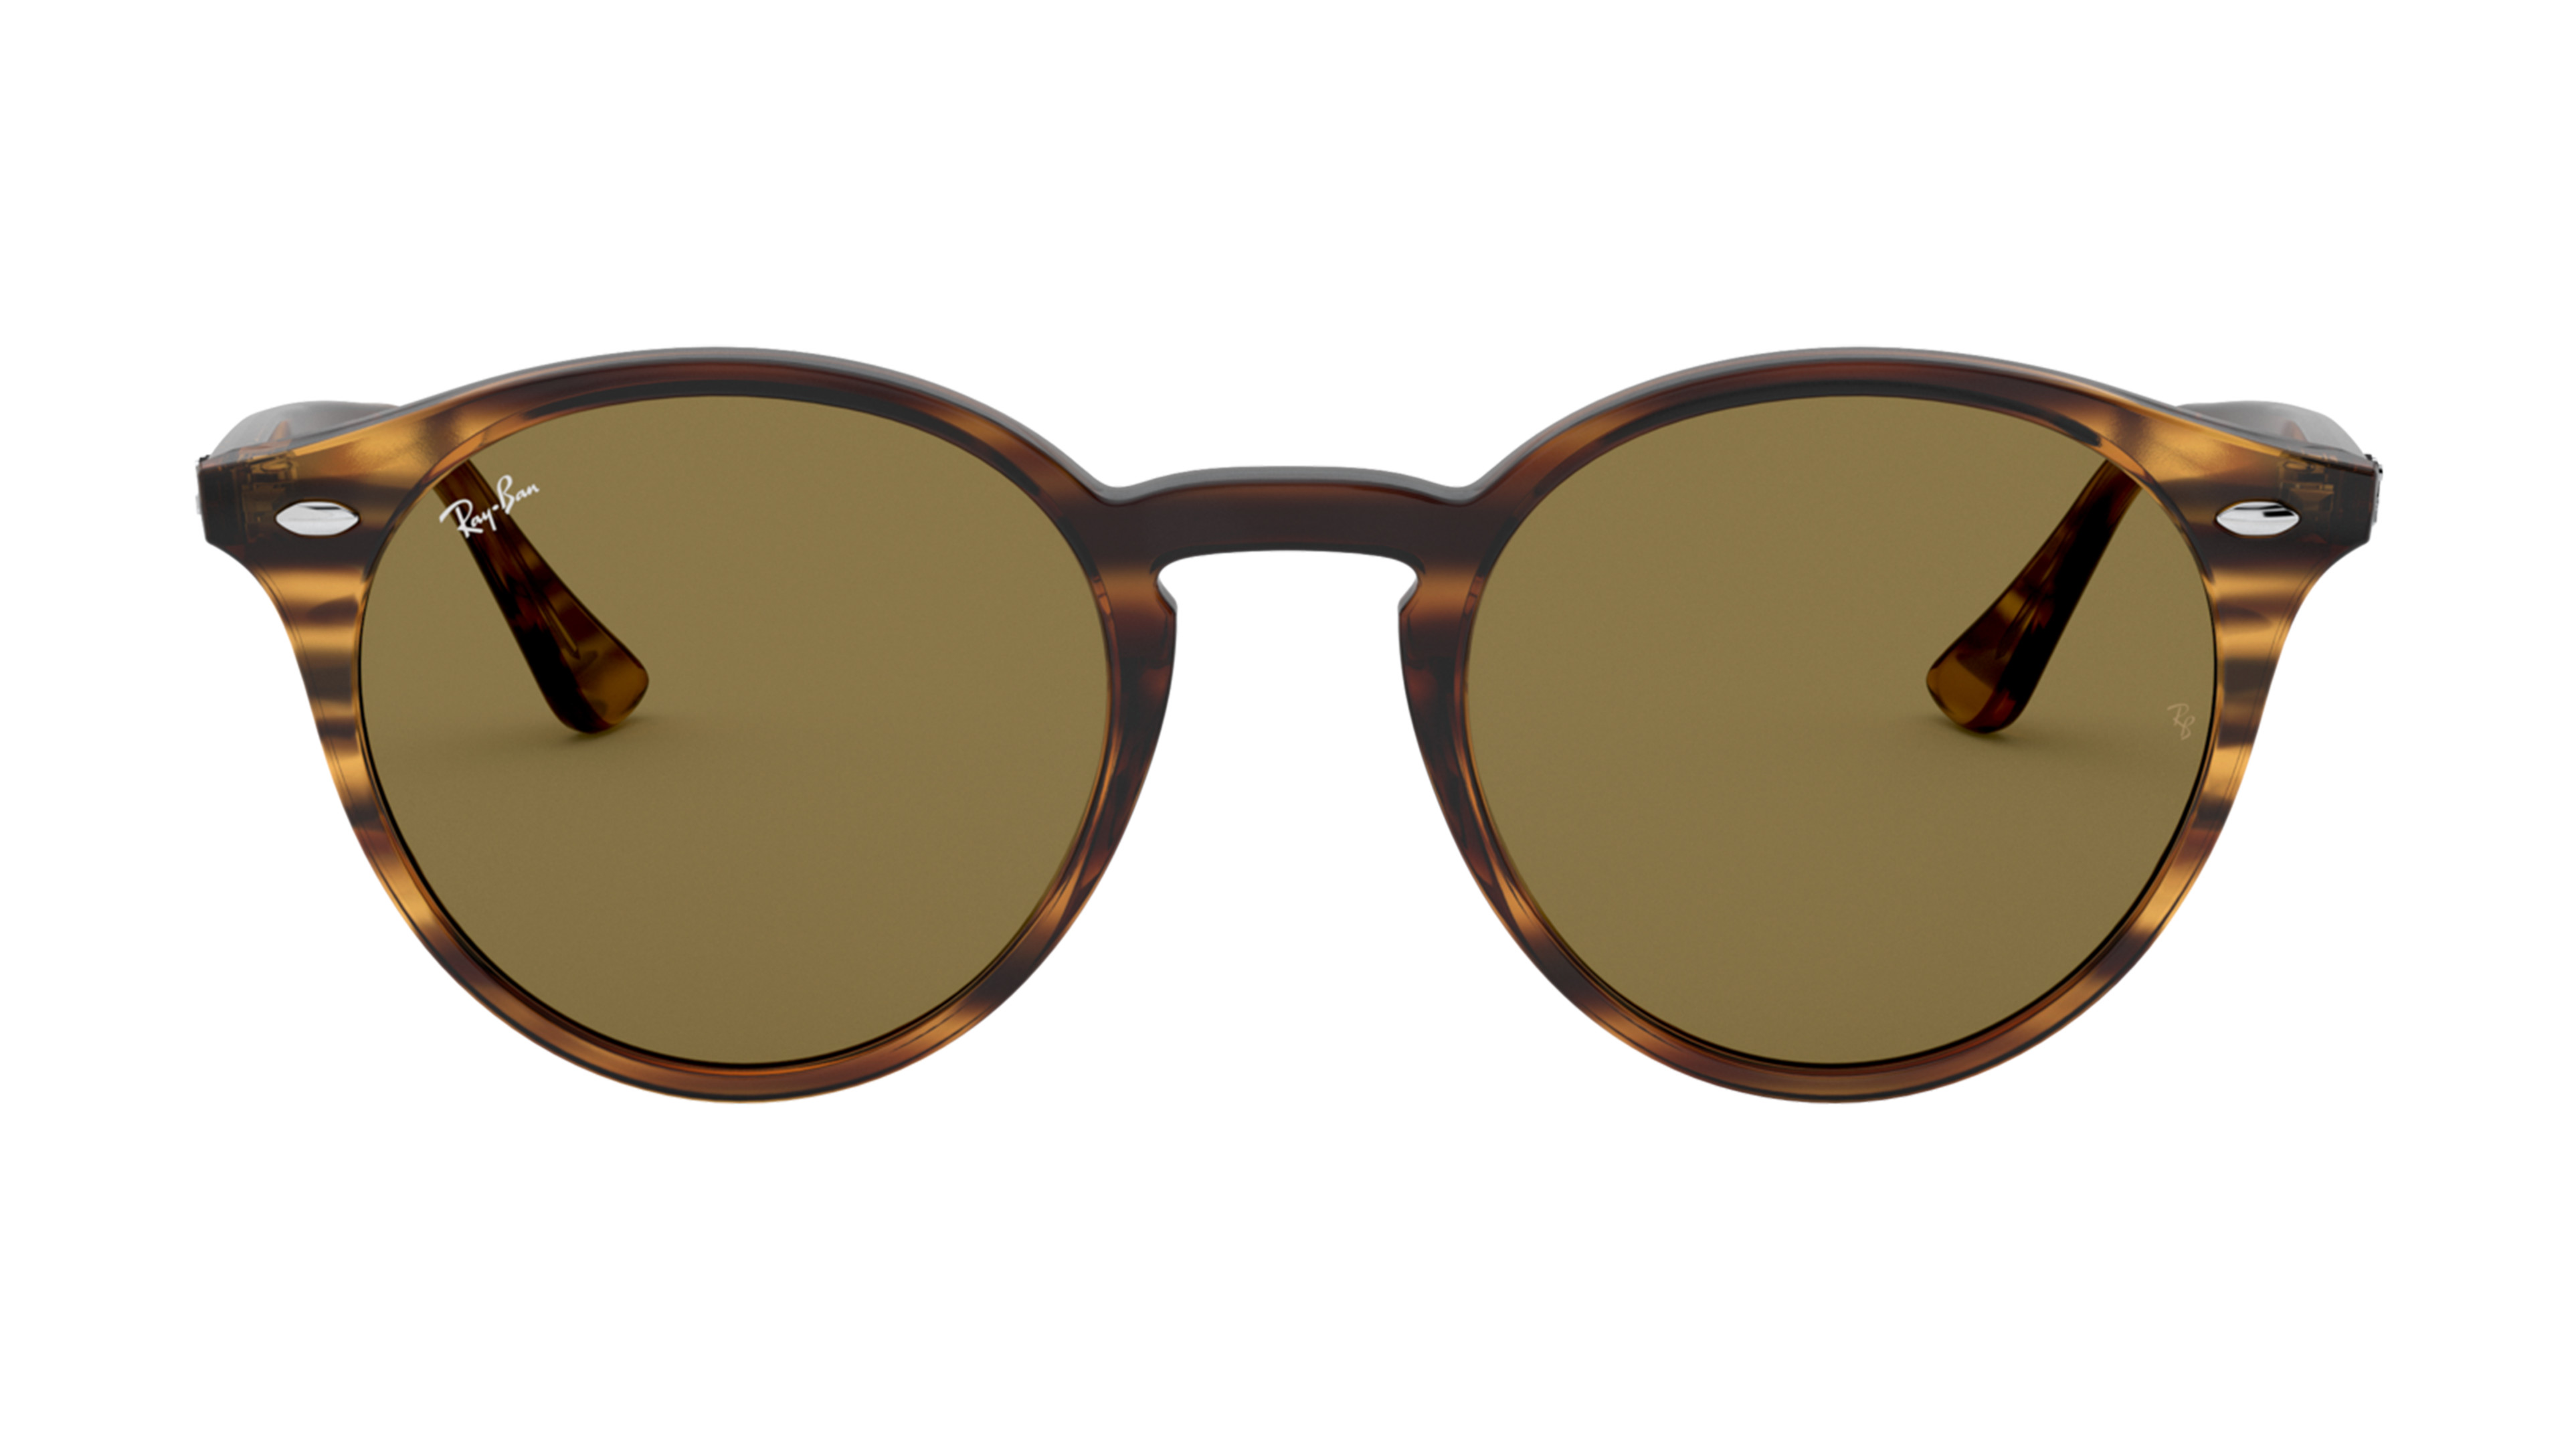 8056597081306-front-Ray-Ban-0RB2180-820-73